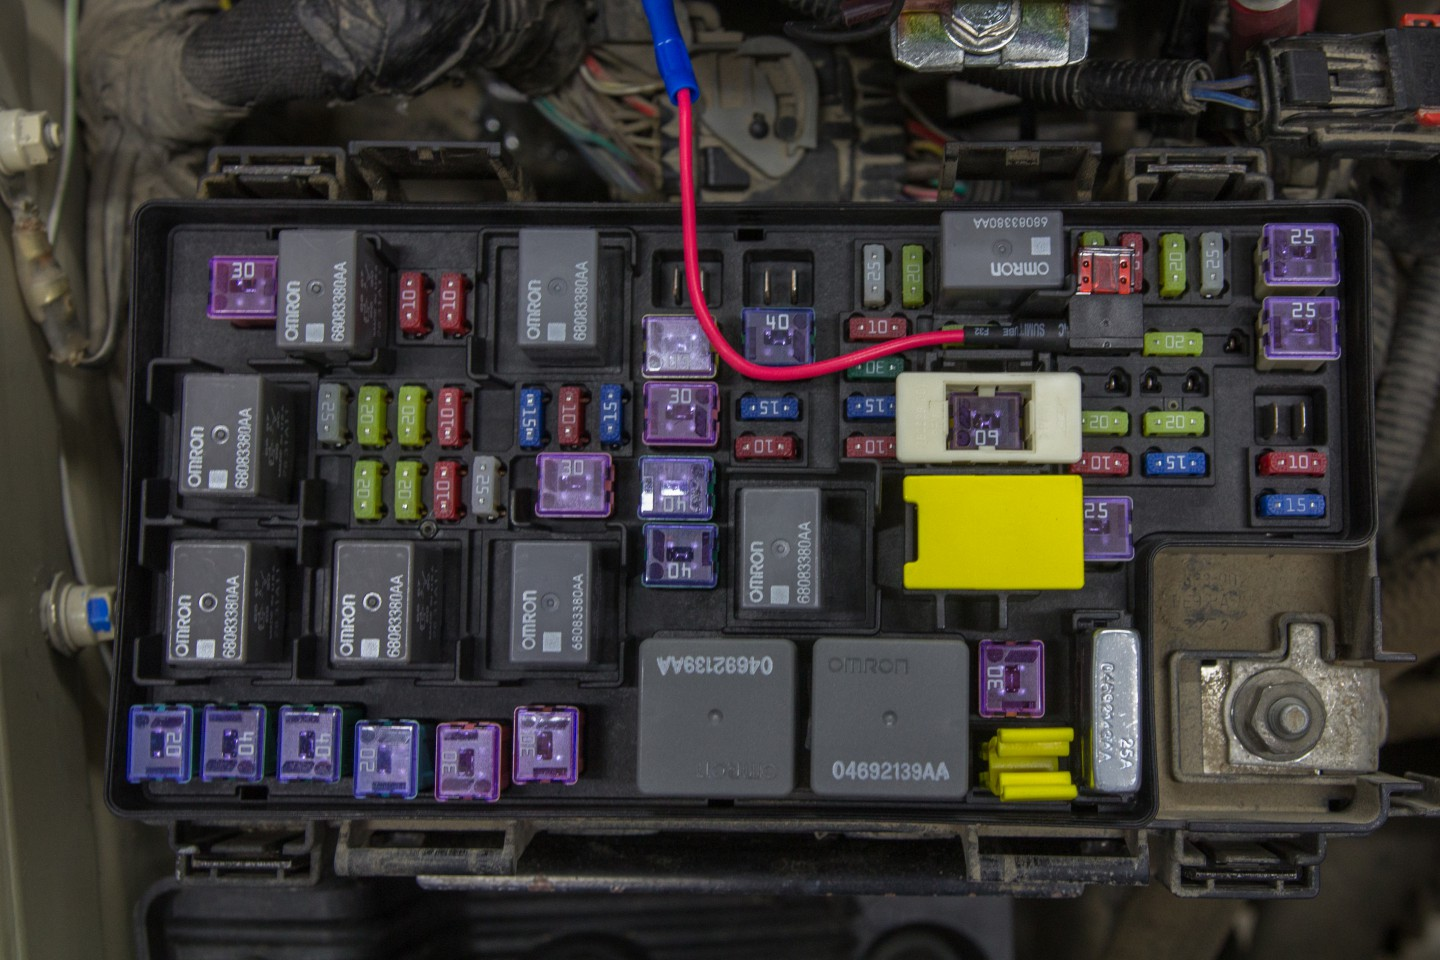 diy jeep wrangler jk isolated dual batteries the road chose me 2010 jeep  wrangler fuse box  2007 jeep wrangler fuse box diagram